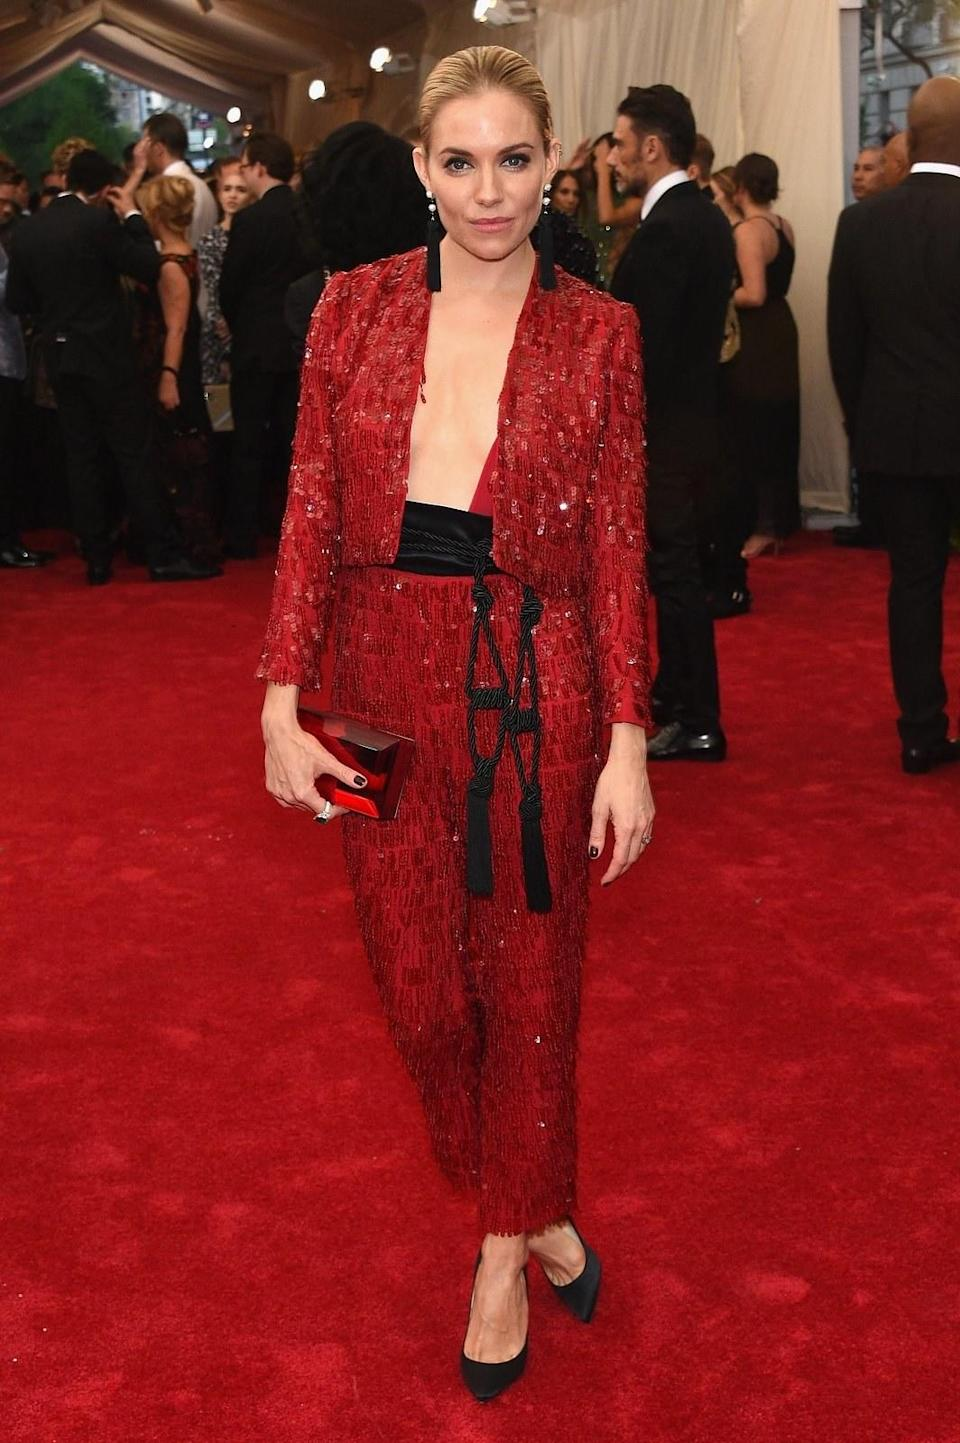 A look back at the Oscar winner's camp best proves she's still the star to beat when it comes to audacious fashion.